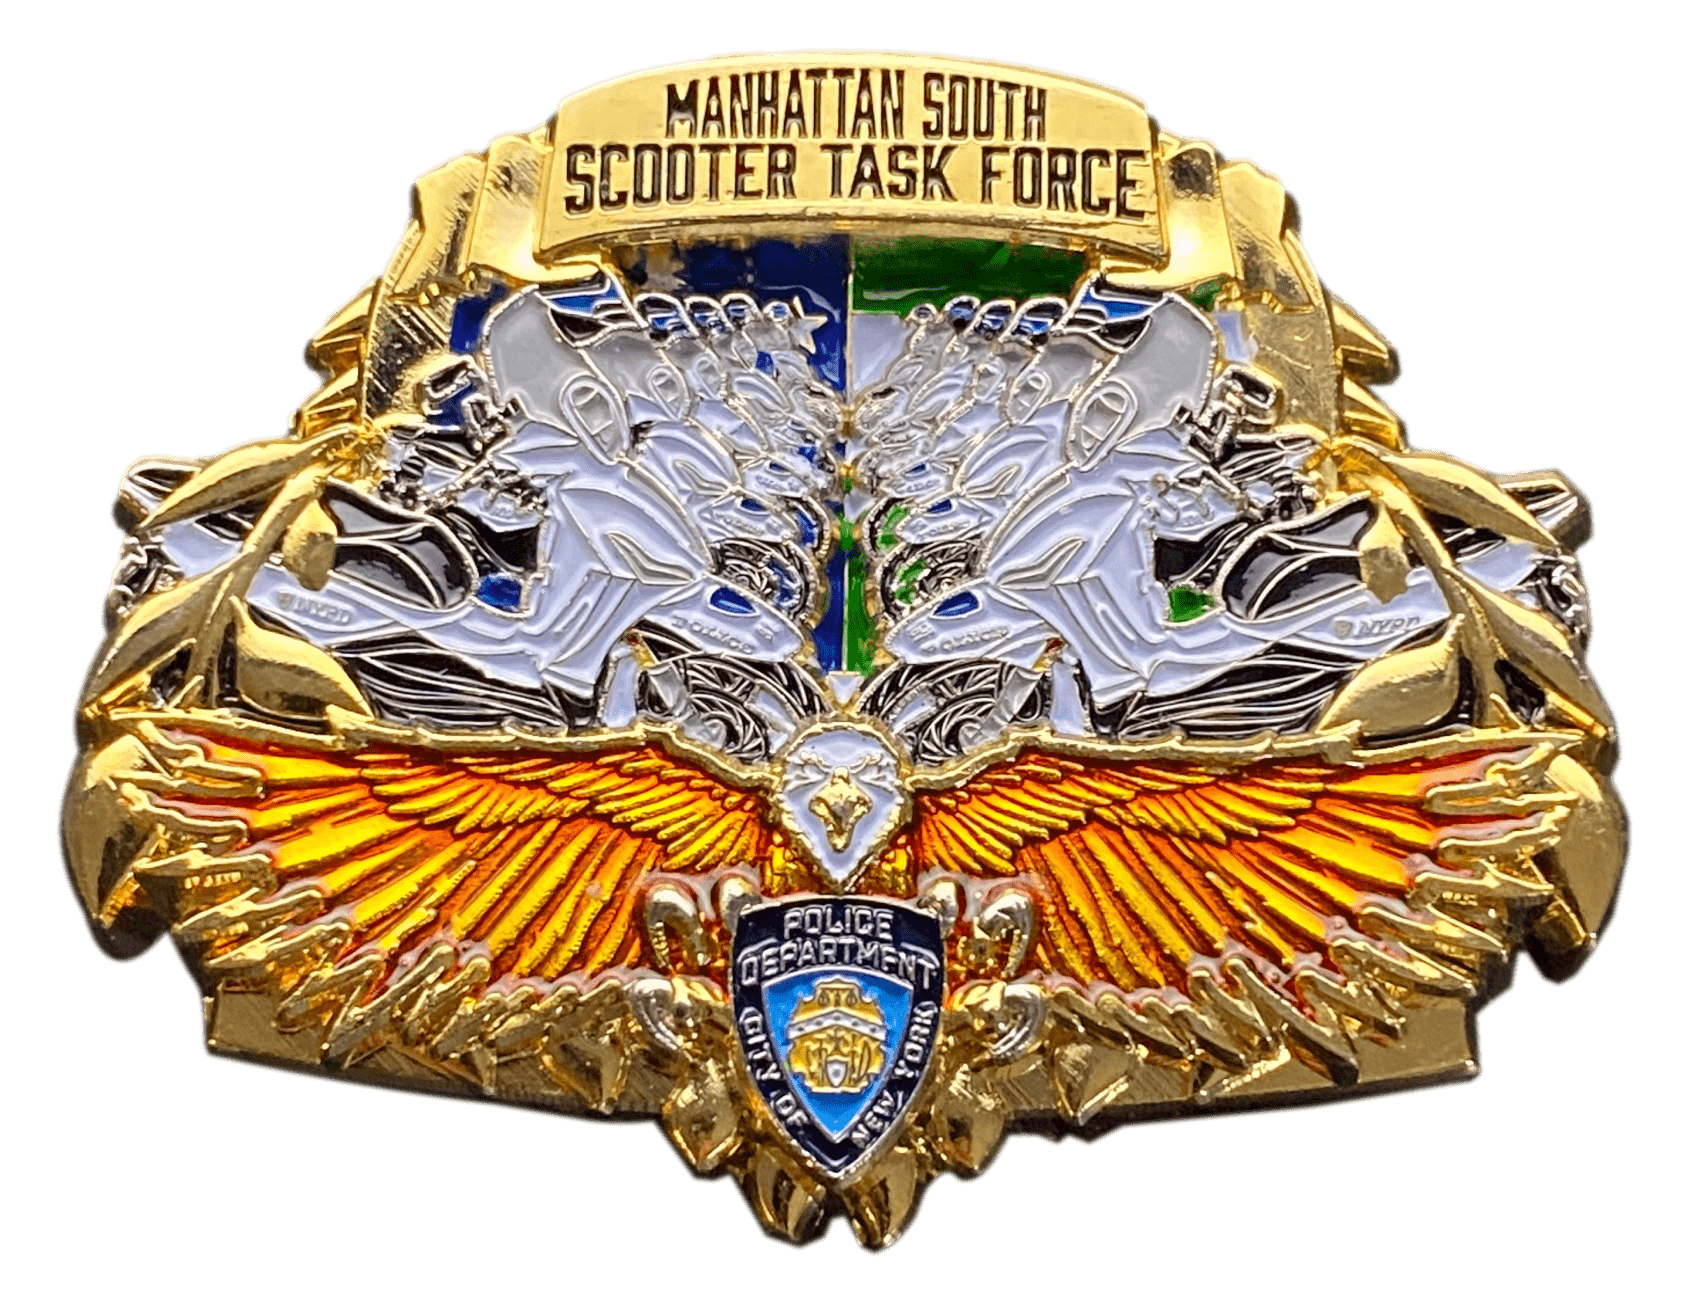 front angle of Task Force coin